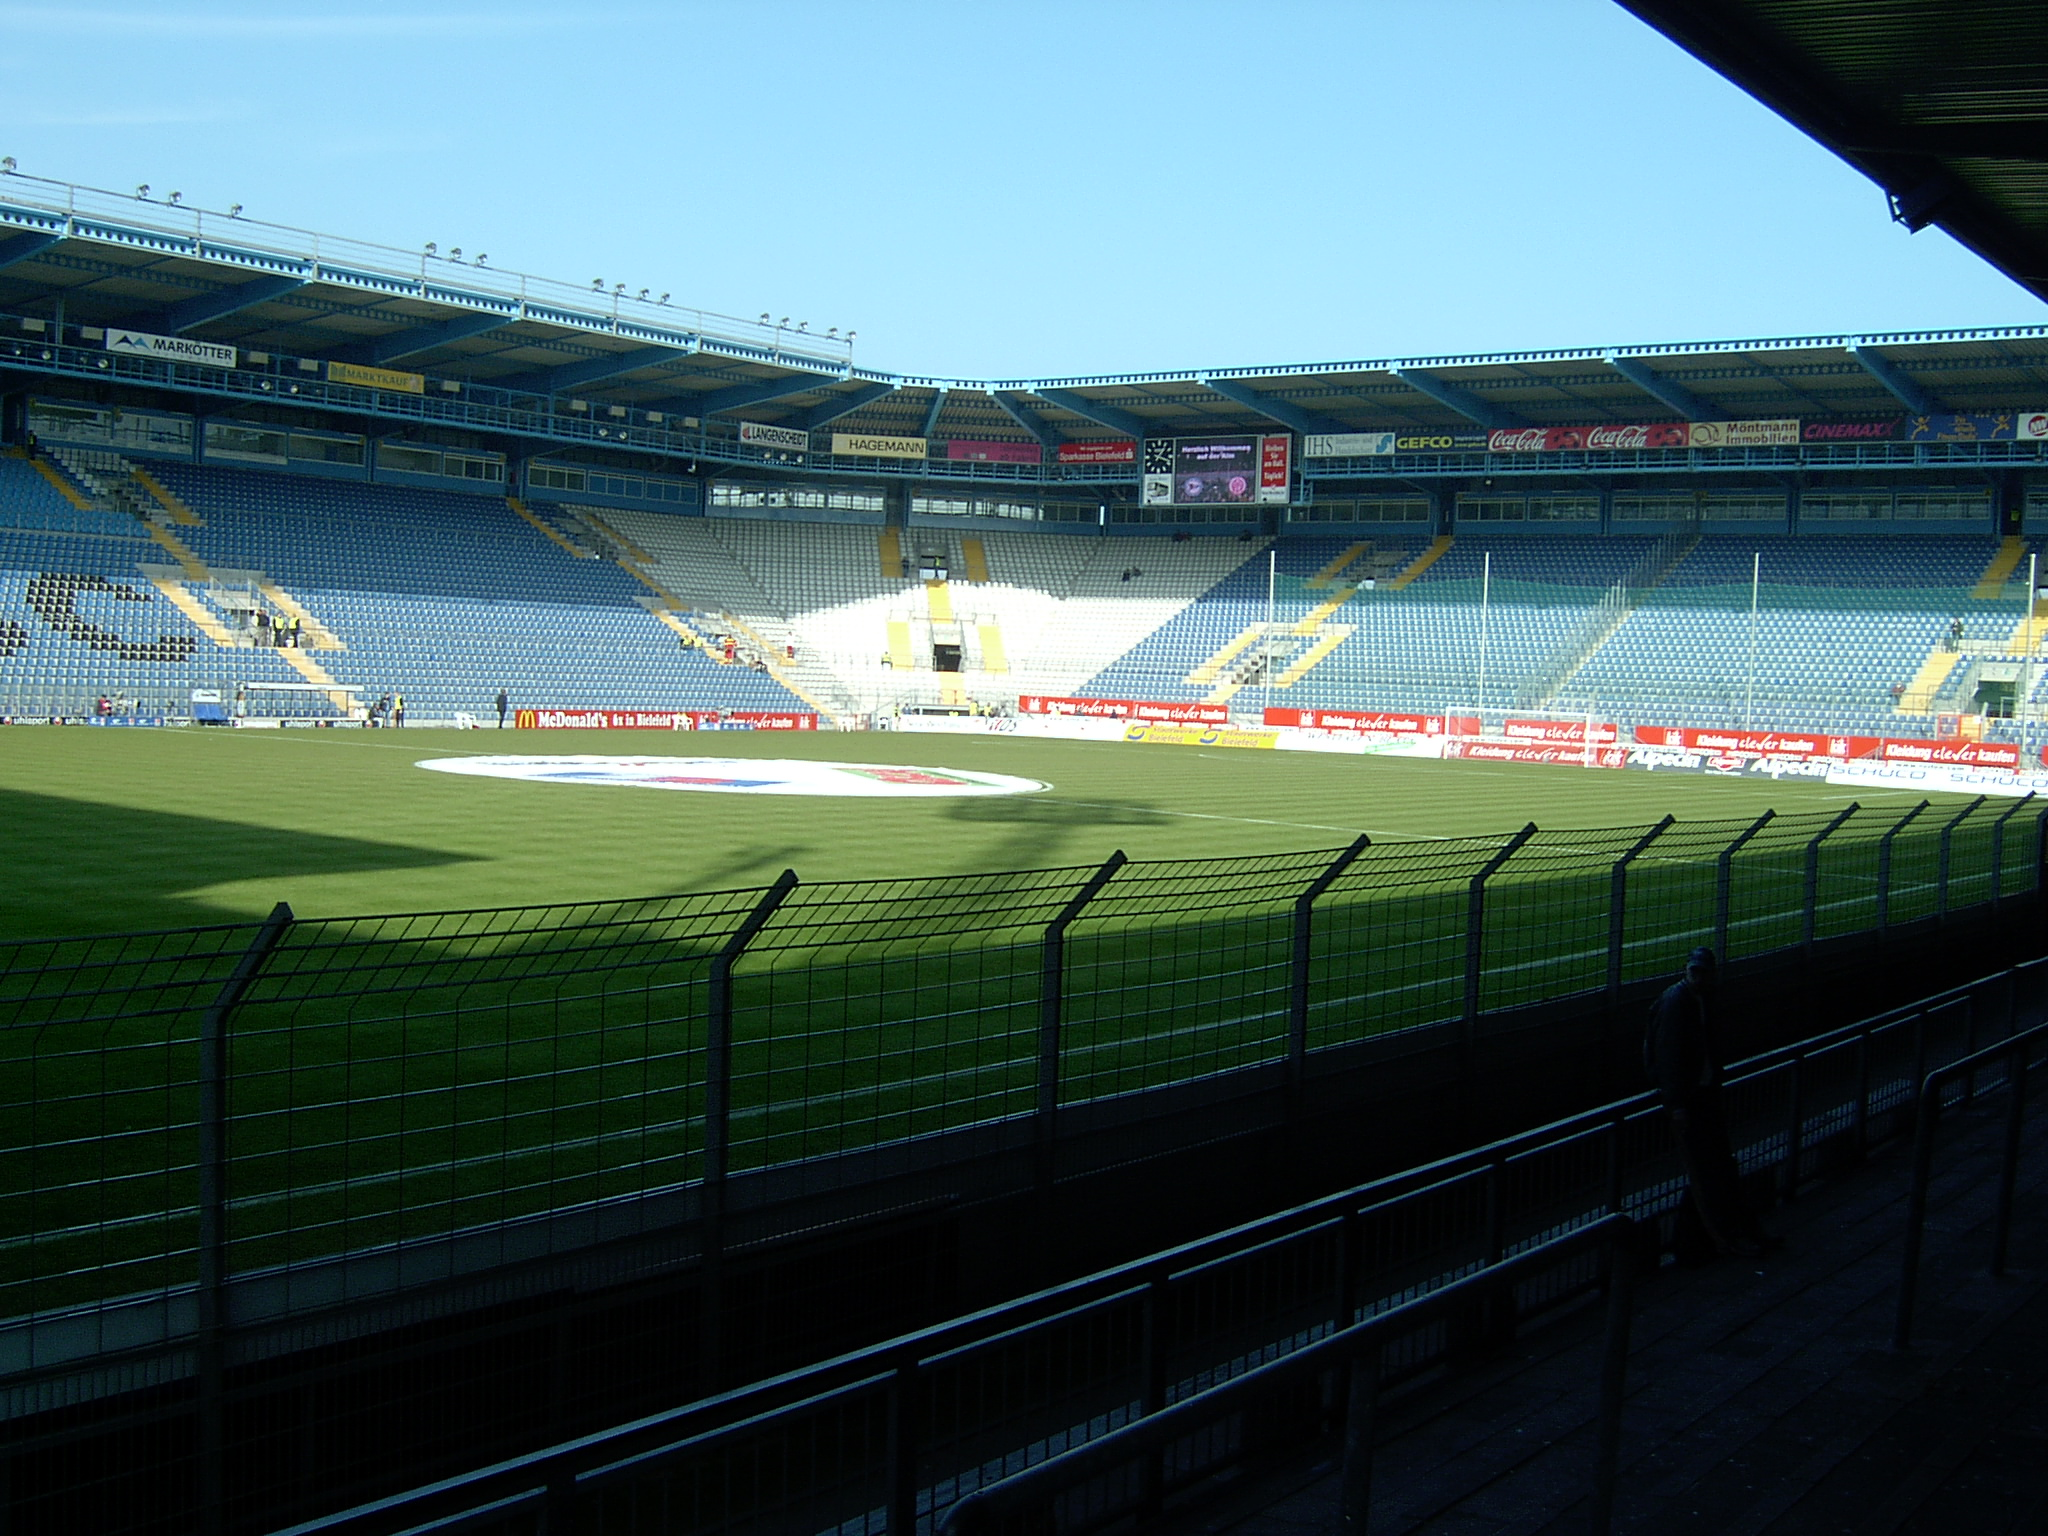 "Estadio Bielefeld CC ""Ecke Nord-West leer"". Licensed under CC BY-SA 3.0 via Wikimedia Commons - http://commons.wikimedia.org/wiki/File:Ecke_Nord-West_leer.JPG#/media/File:Ecke_Nord-West_leer.JPG"